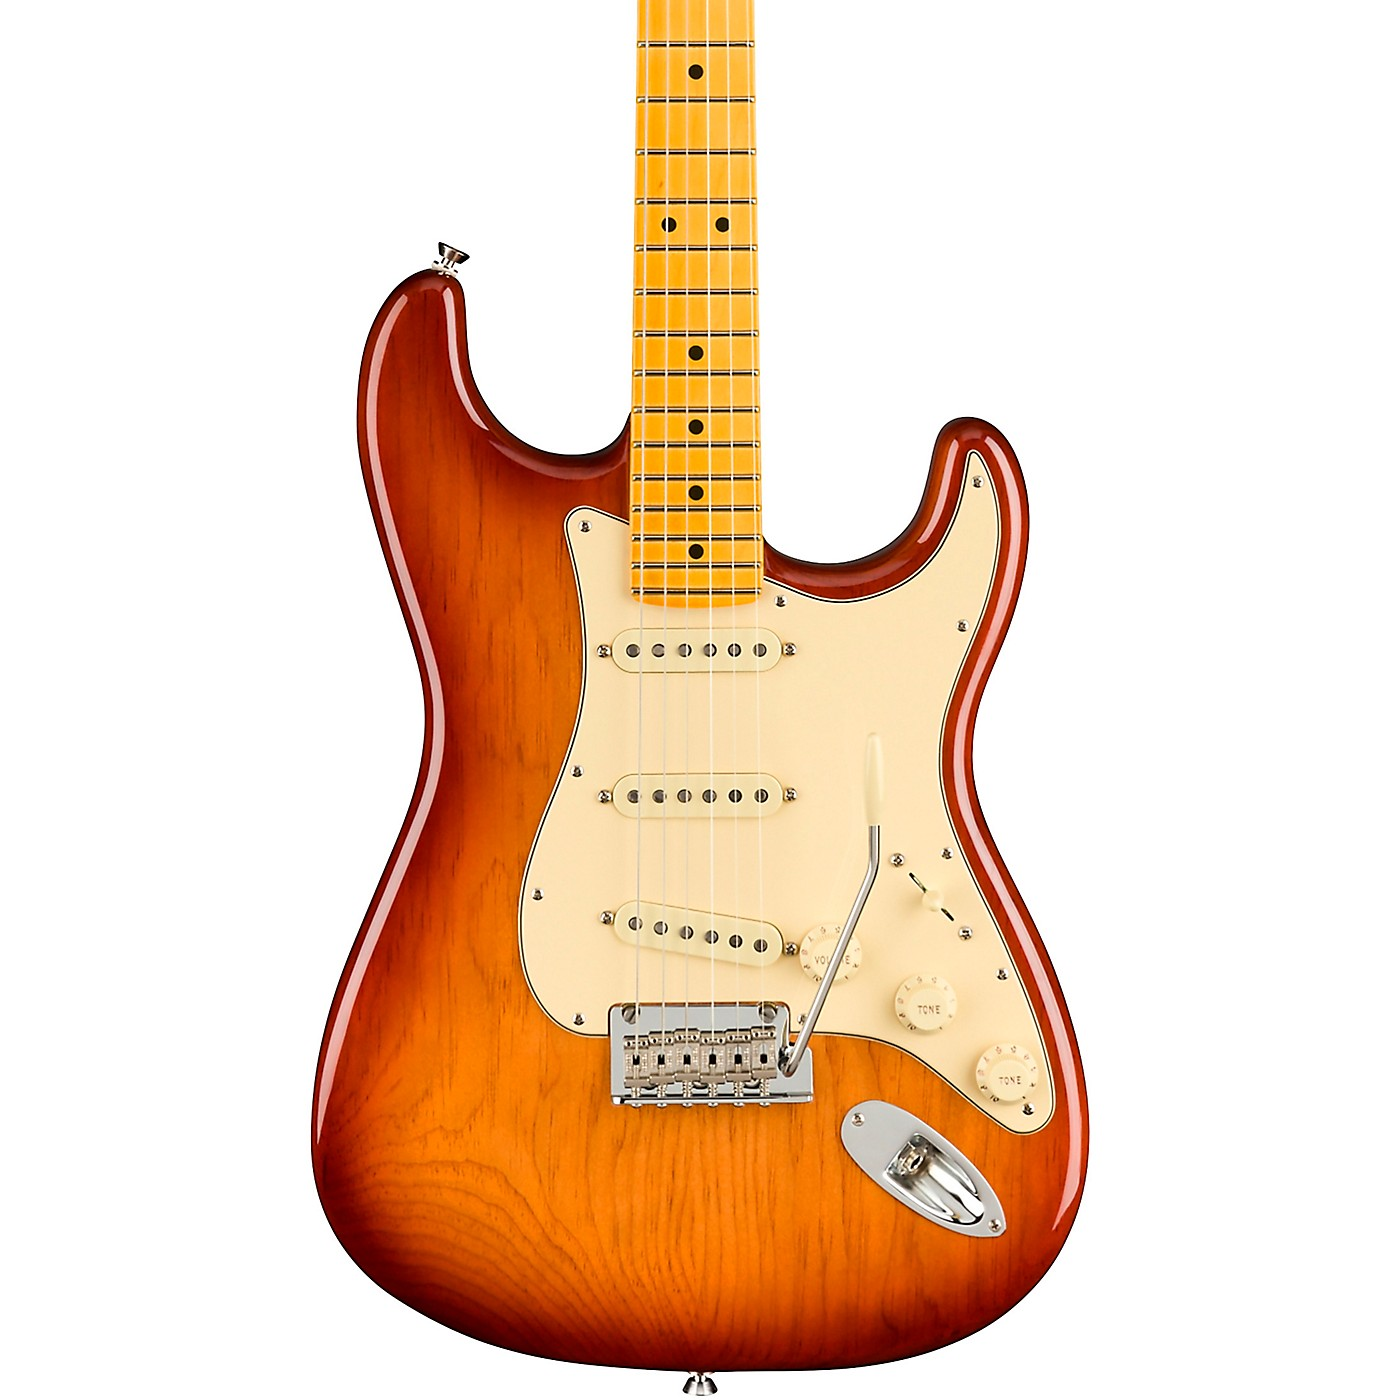 Fender American Professional II Roasted Pine Stratocaster Maple Fingerboard Electric Guitar thumbnail